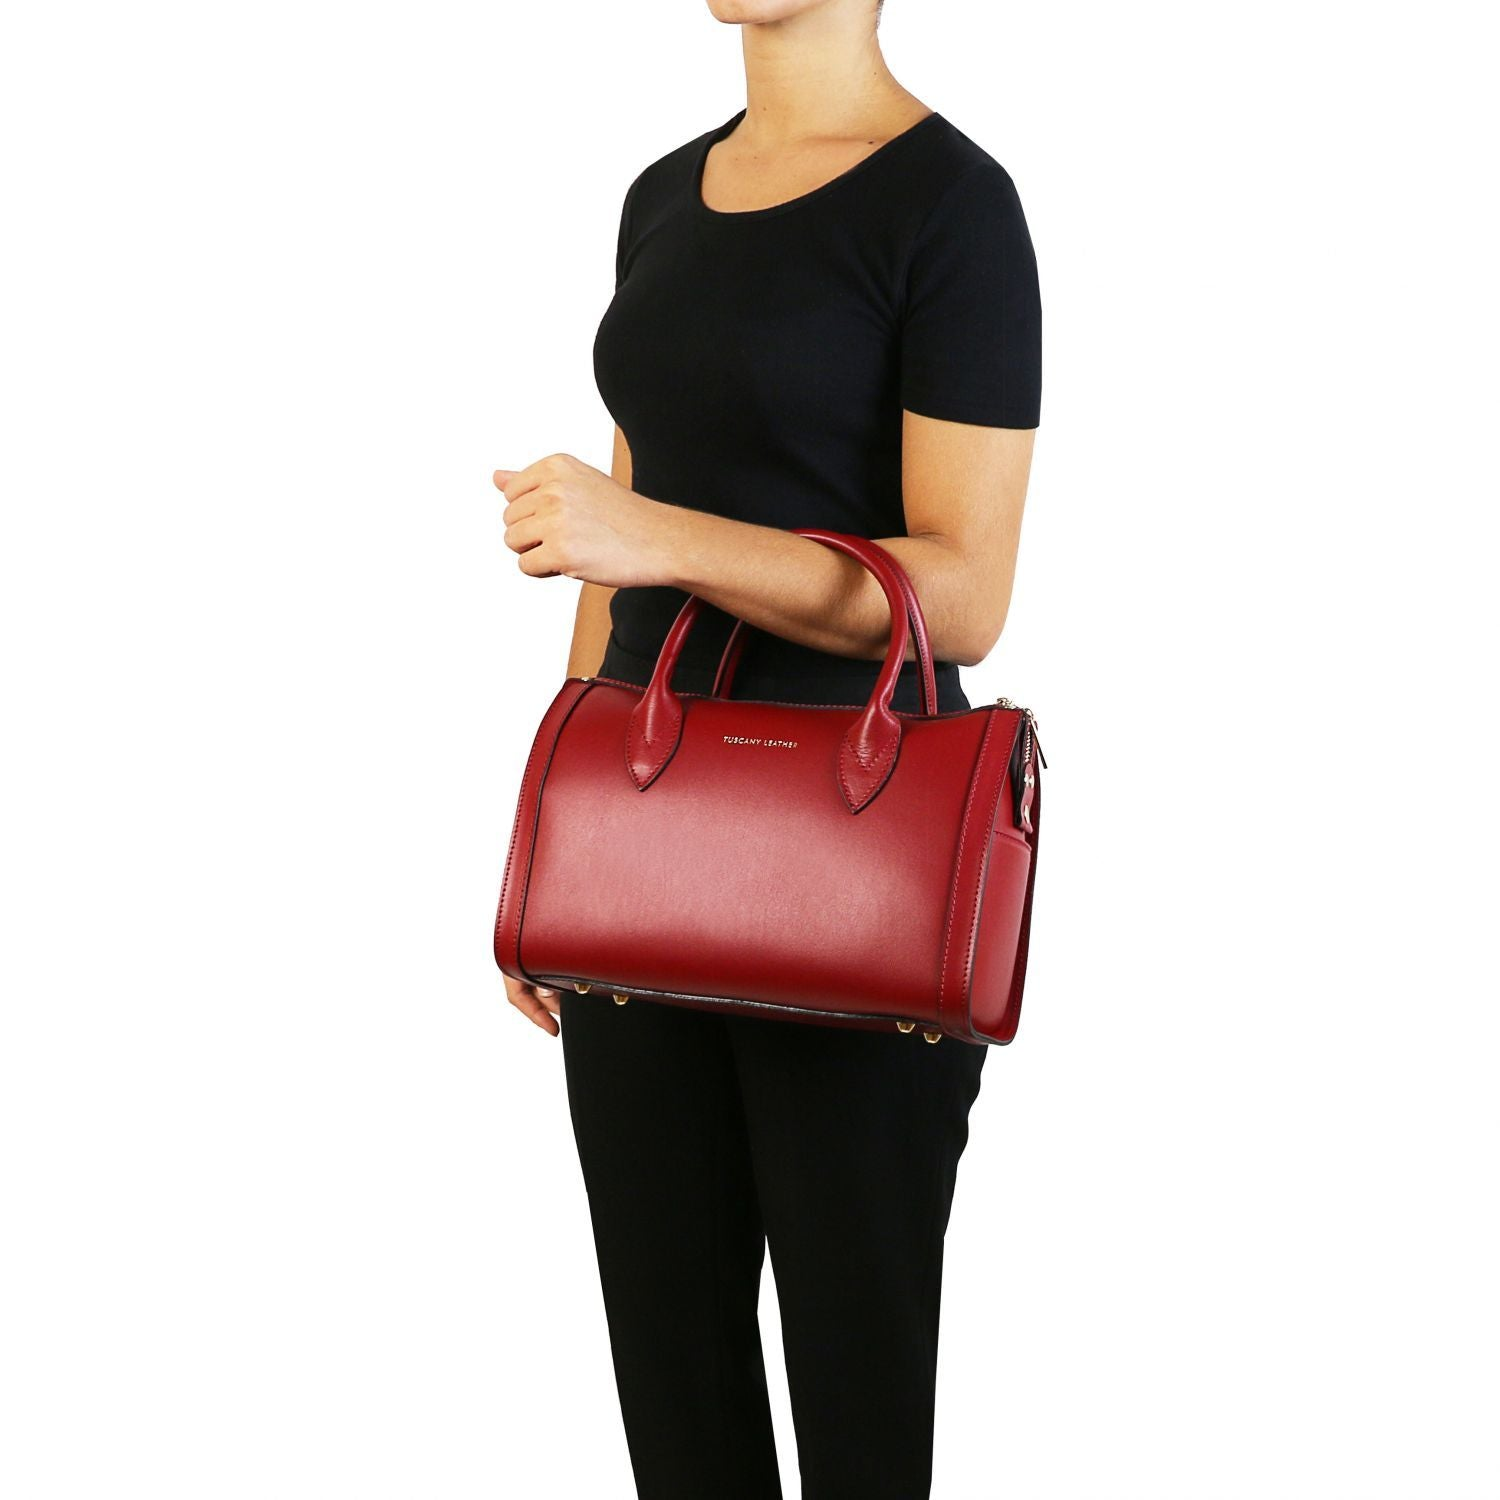 Elena - Leather duffle bag (TL141829) - Leather handbags | DILUSSOBAGS